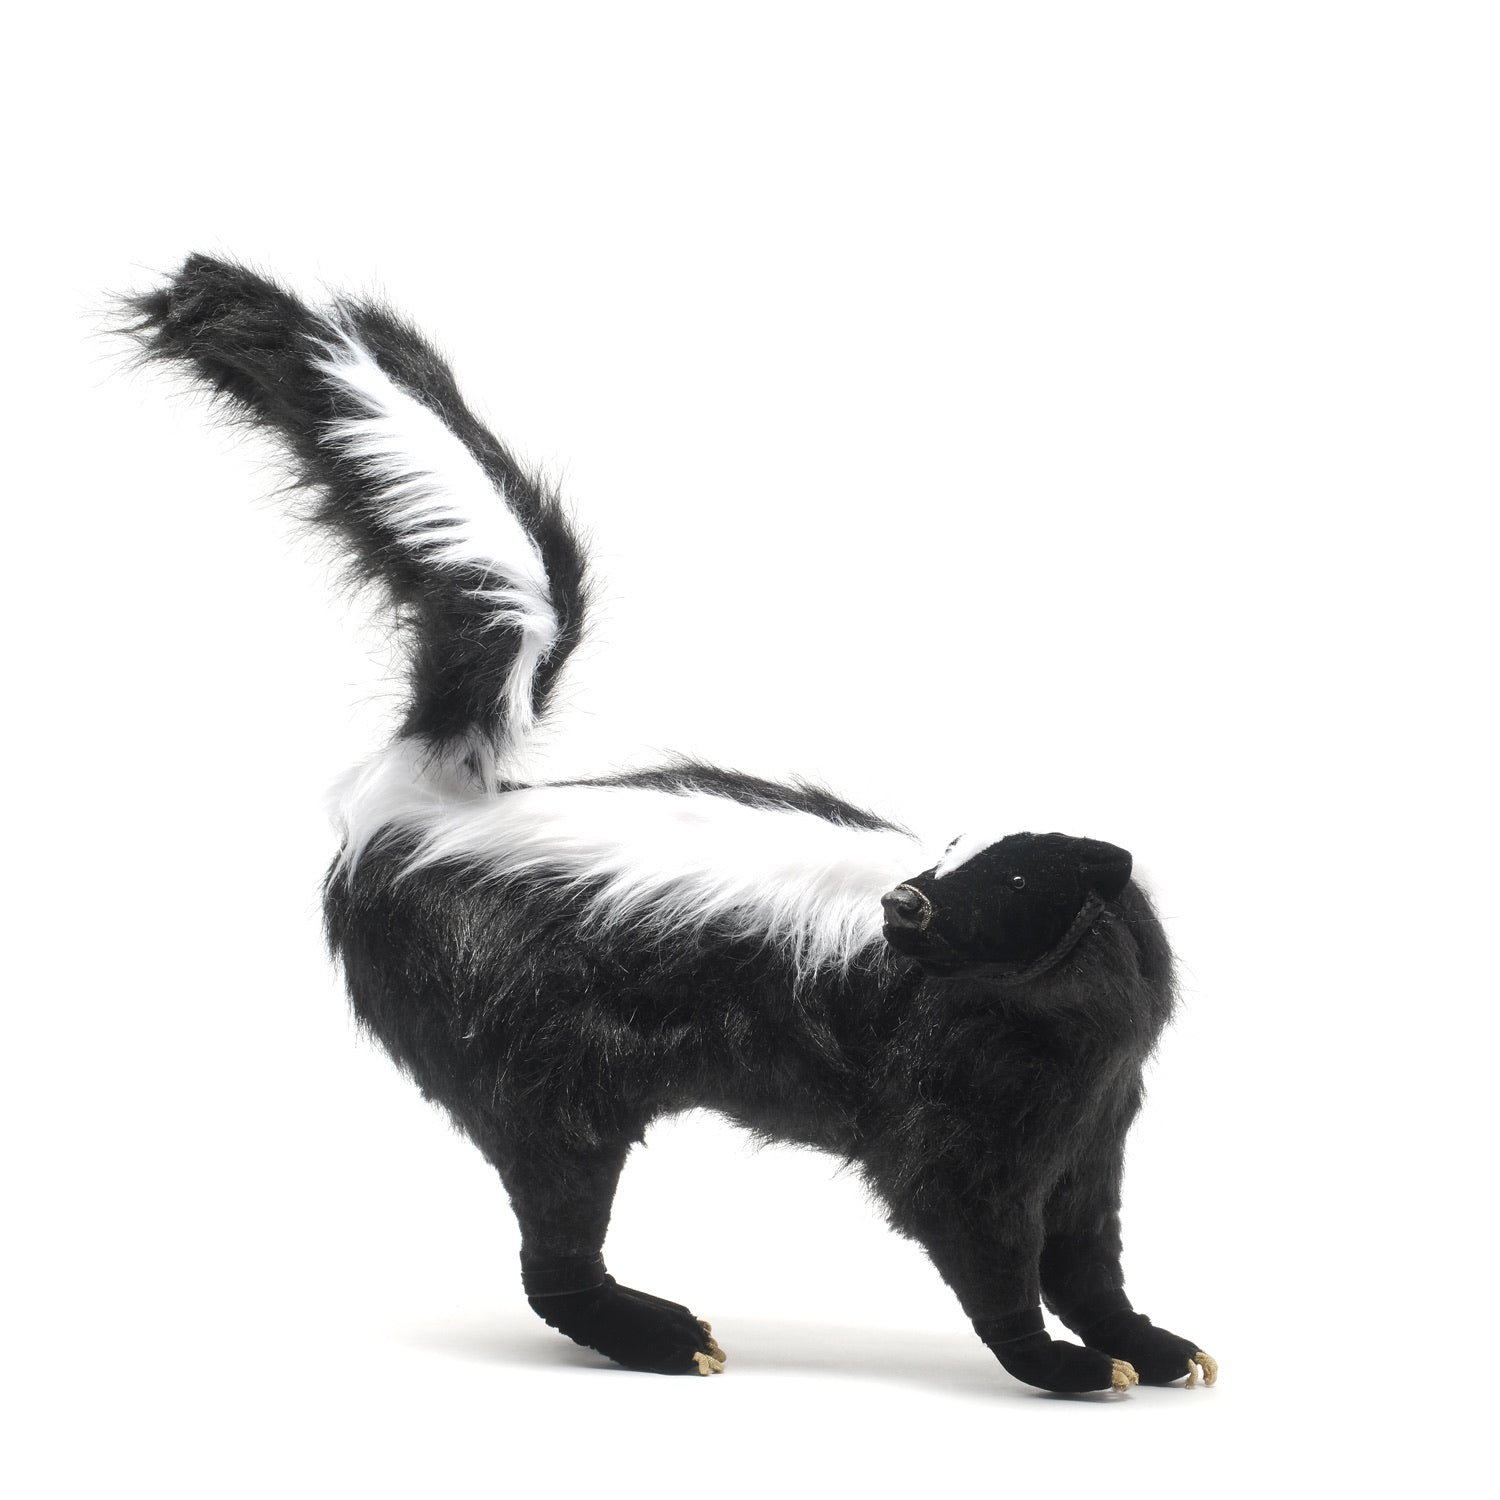 Skunk (Mephitidae) *SOLD*